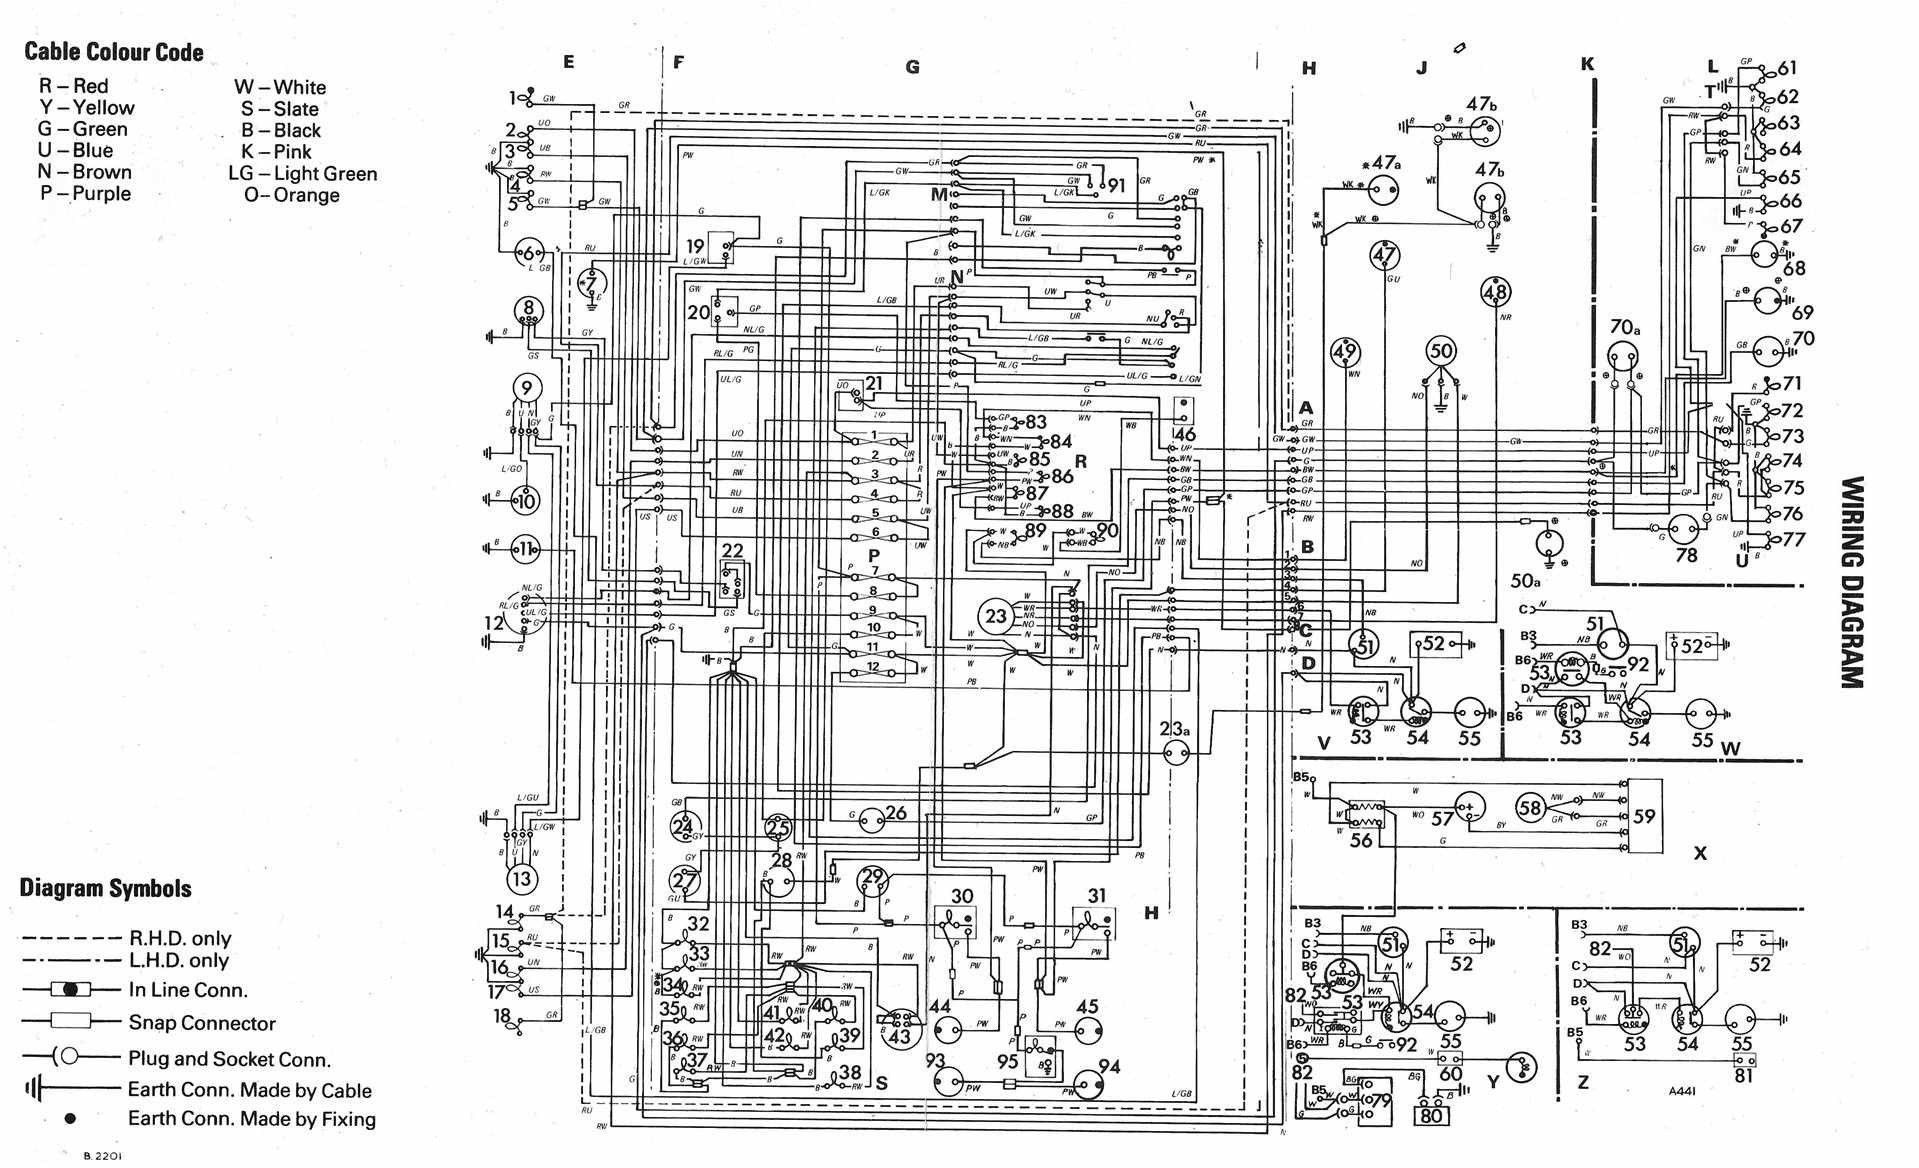 Golf 4 Radio Wiring Diagram